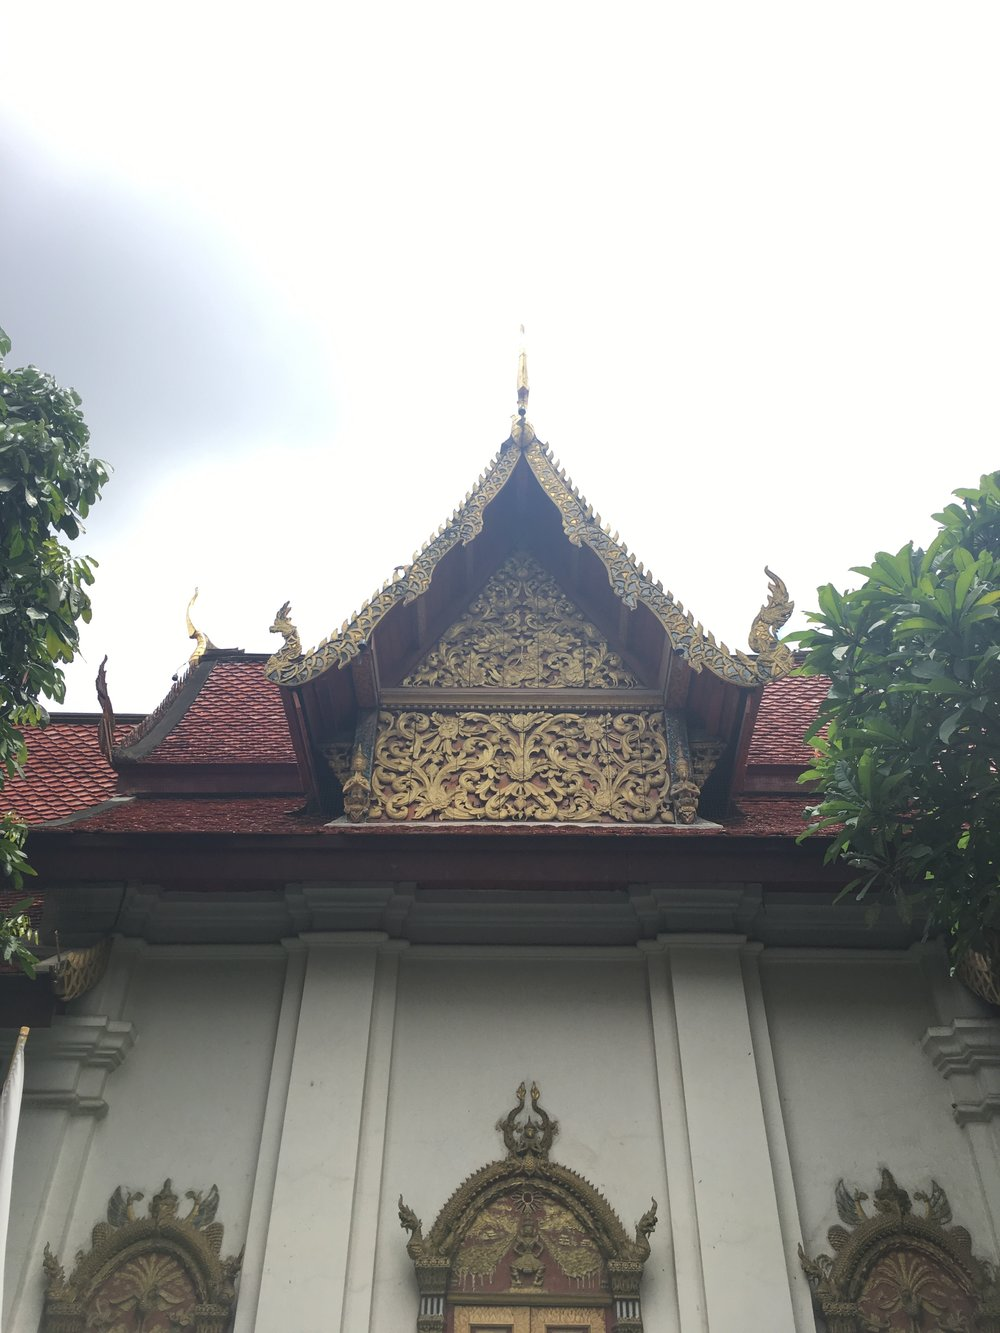 The nearest temple to our hotel.